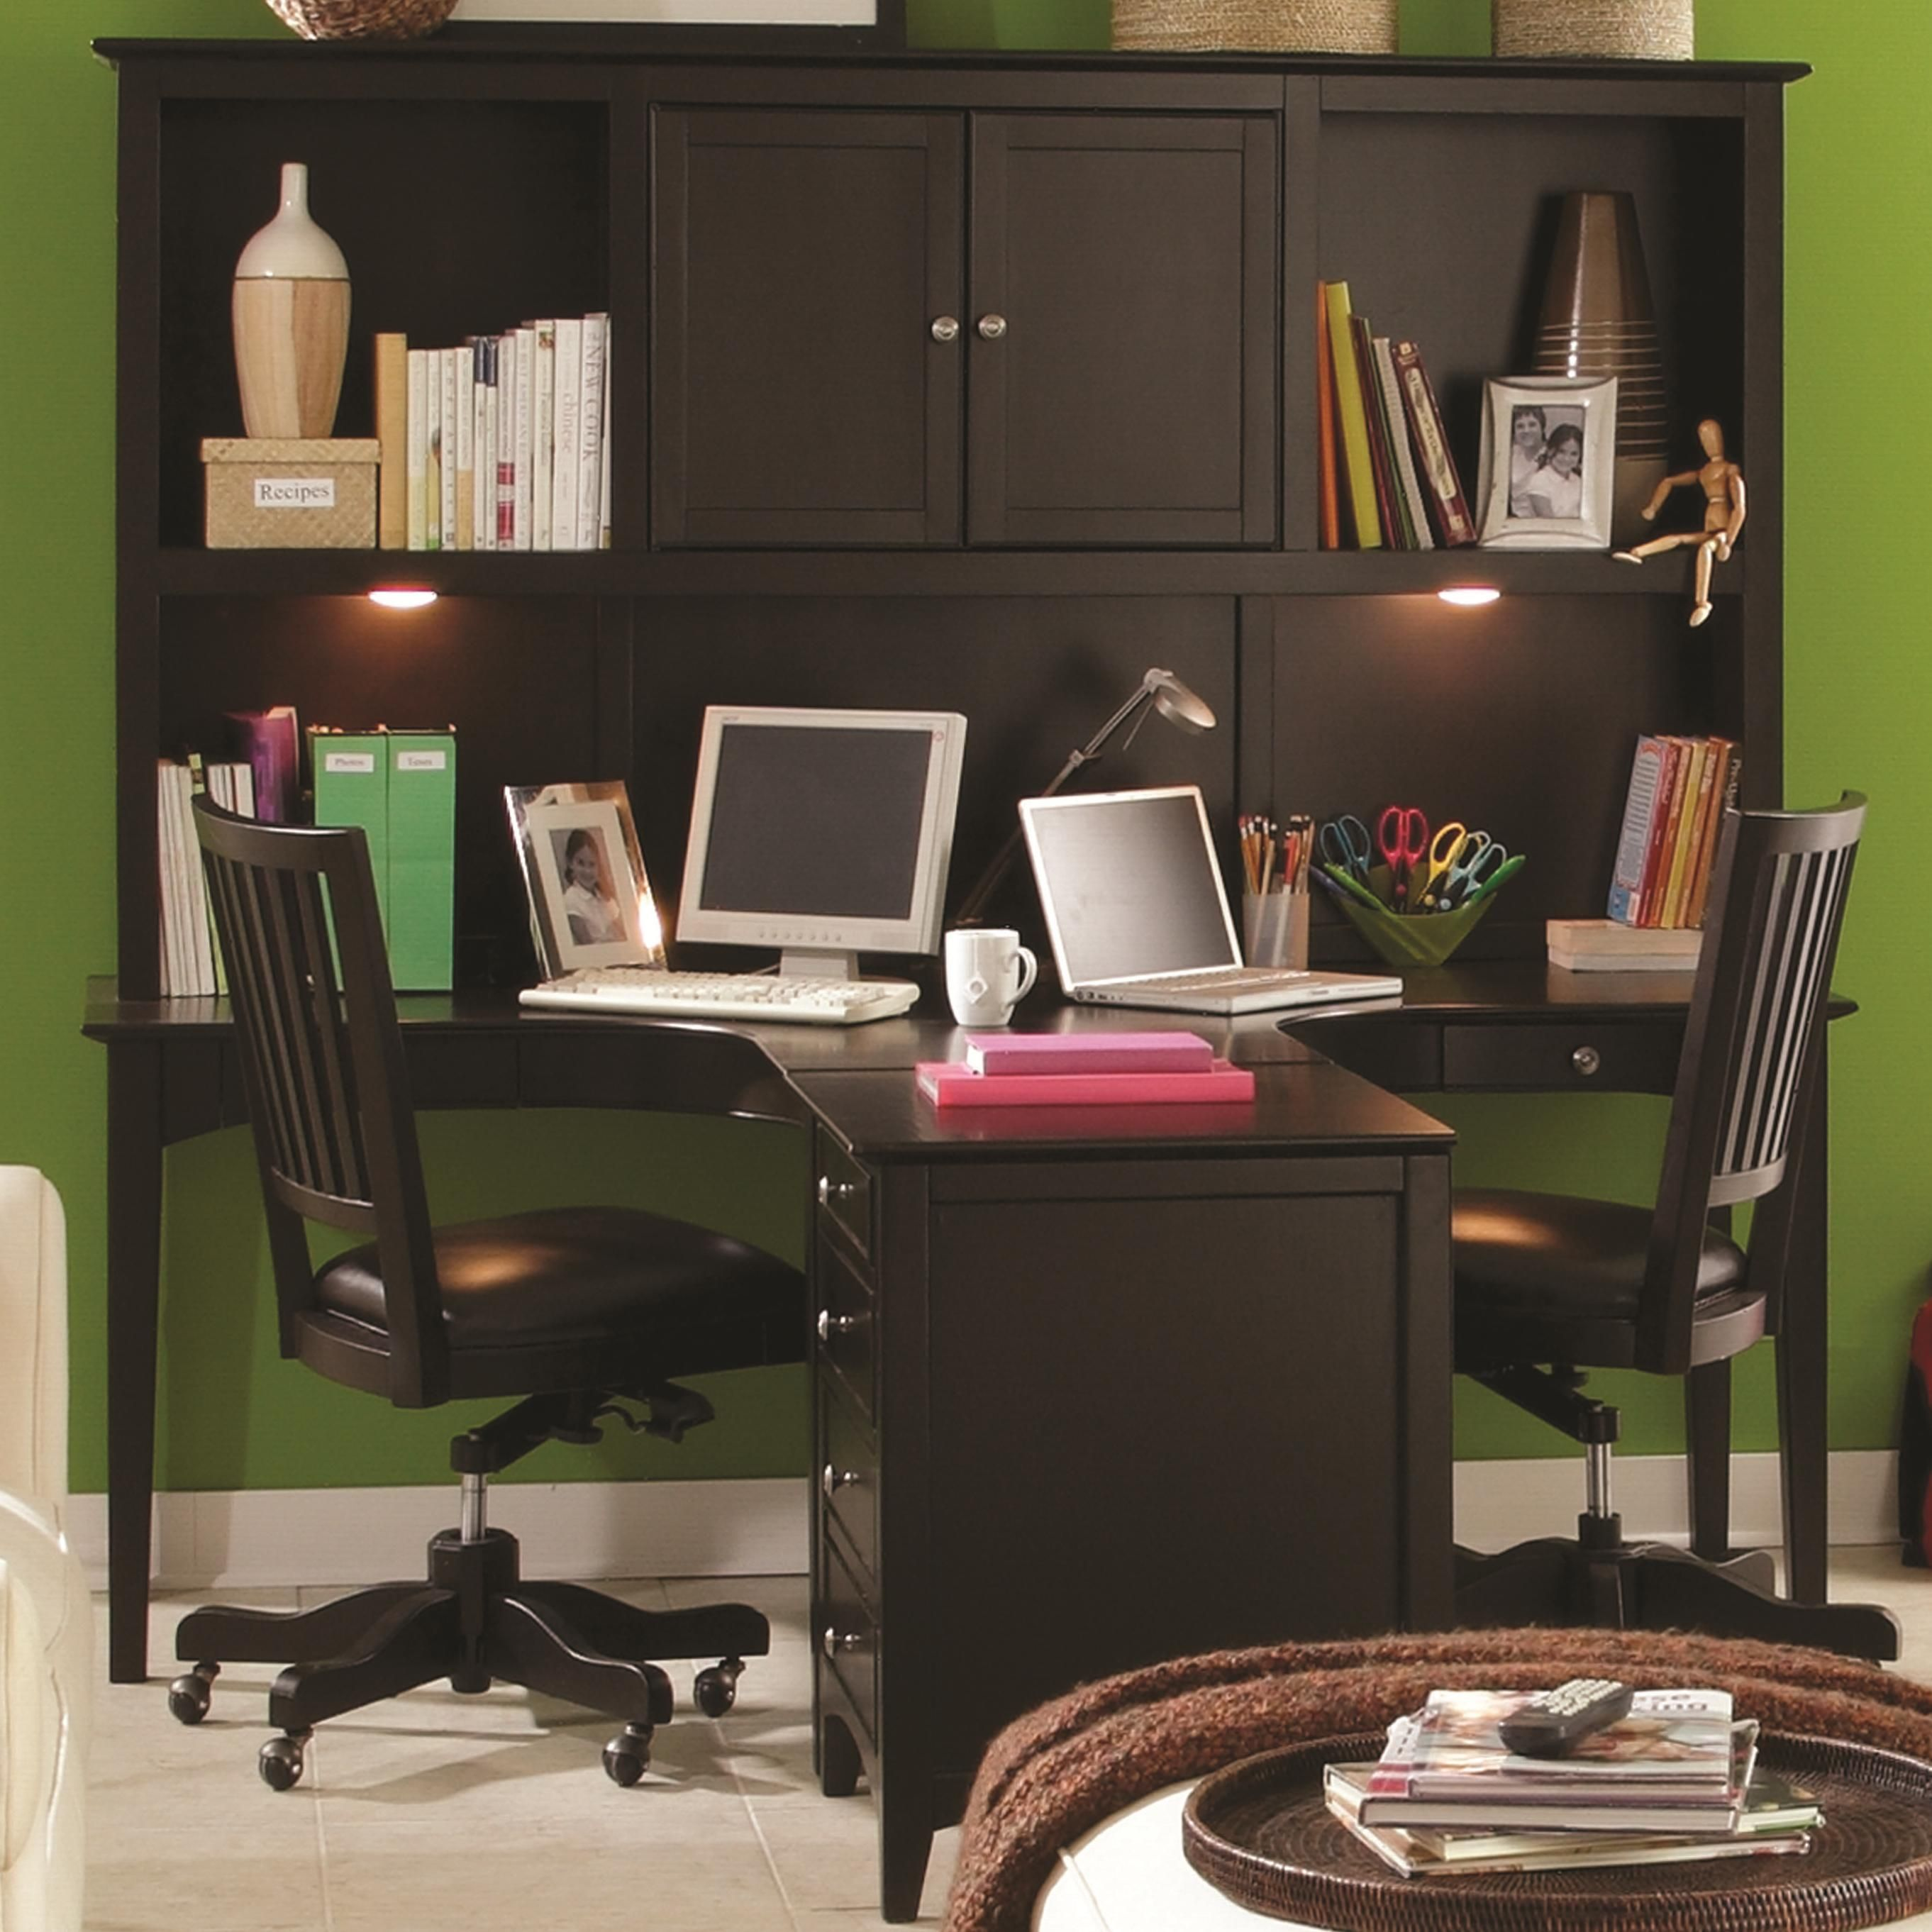 Amazing 2 Person Desk, Home Office Desks, Office Furniture, Corner Desks For Home,  Office Table, Furniture Ideas, Desk With Storage, Desk With Hutch, The Hutch